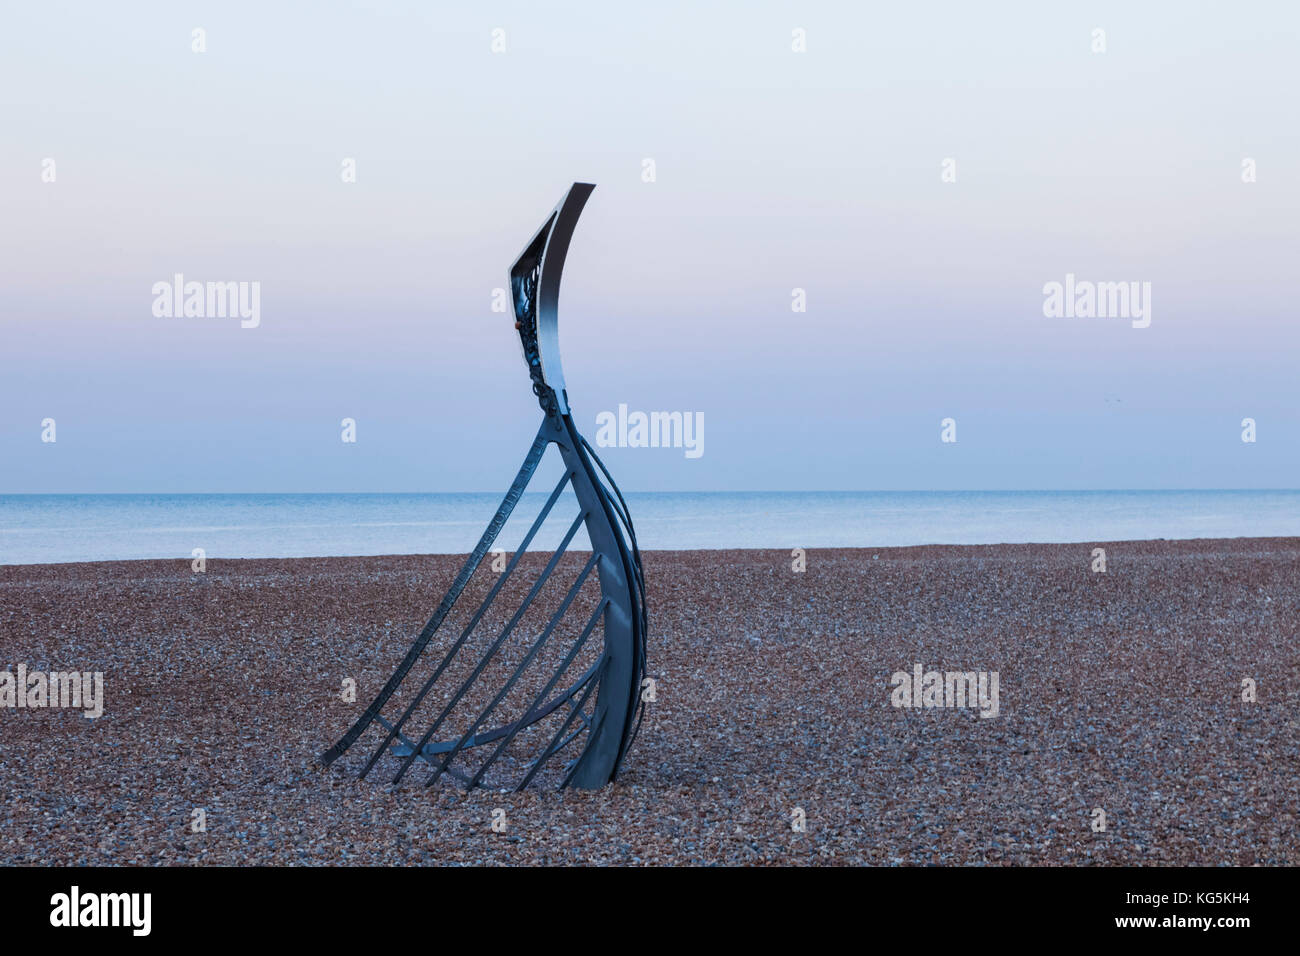 England, East Sussex, Hastings, Hastings Beach, Sculpture titled 'The Landing' by Leigh Dyer - Stock Image